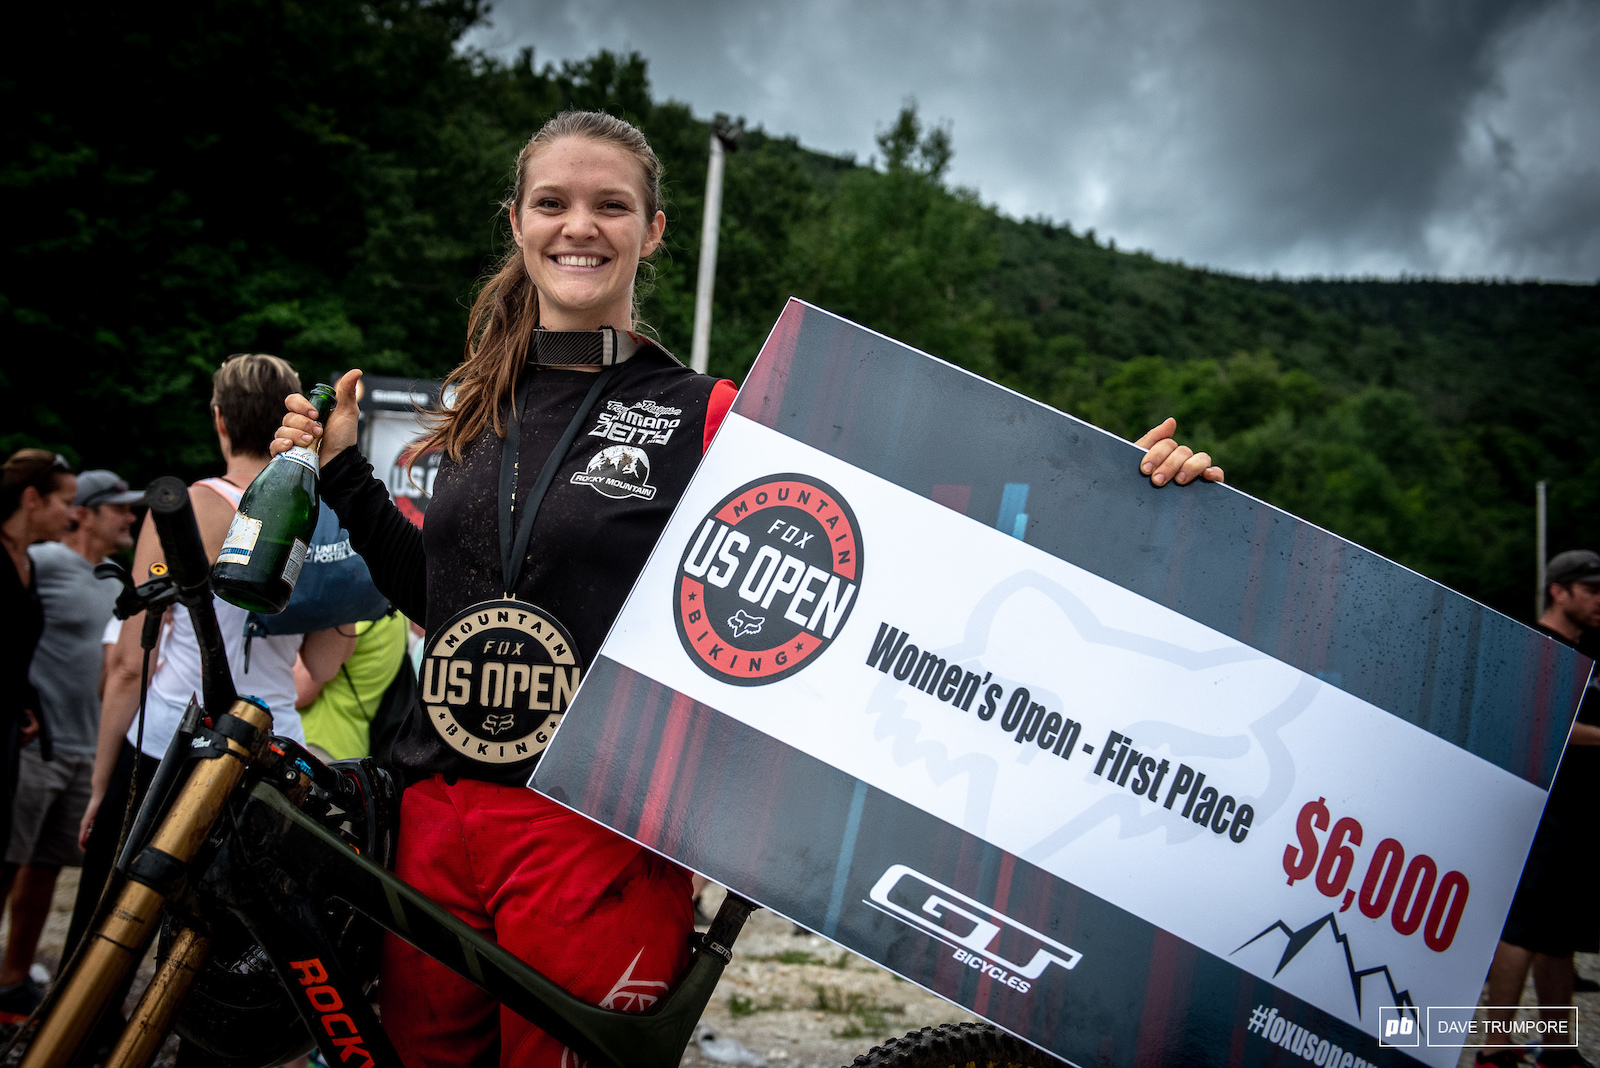 A very nice payday indeed for Vaea Verbeeck